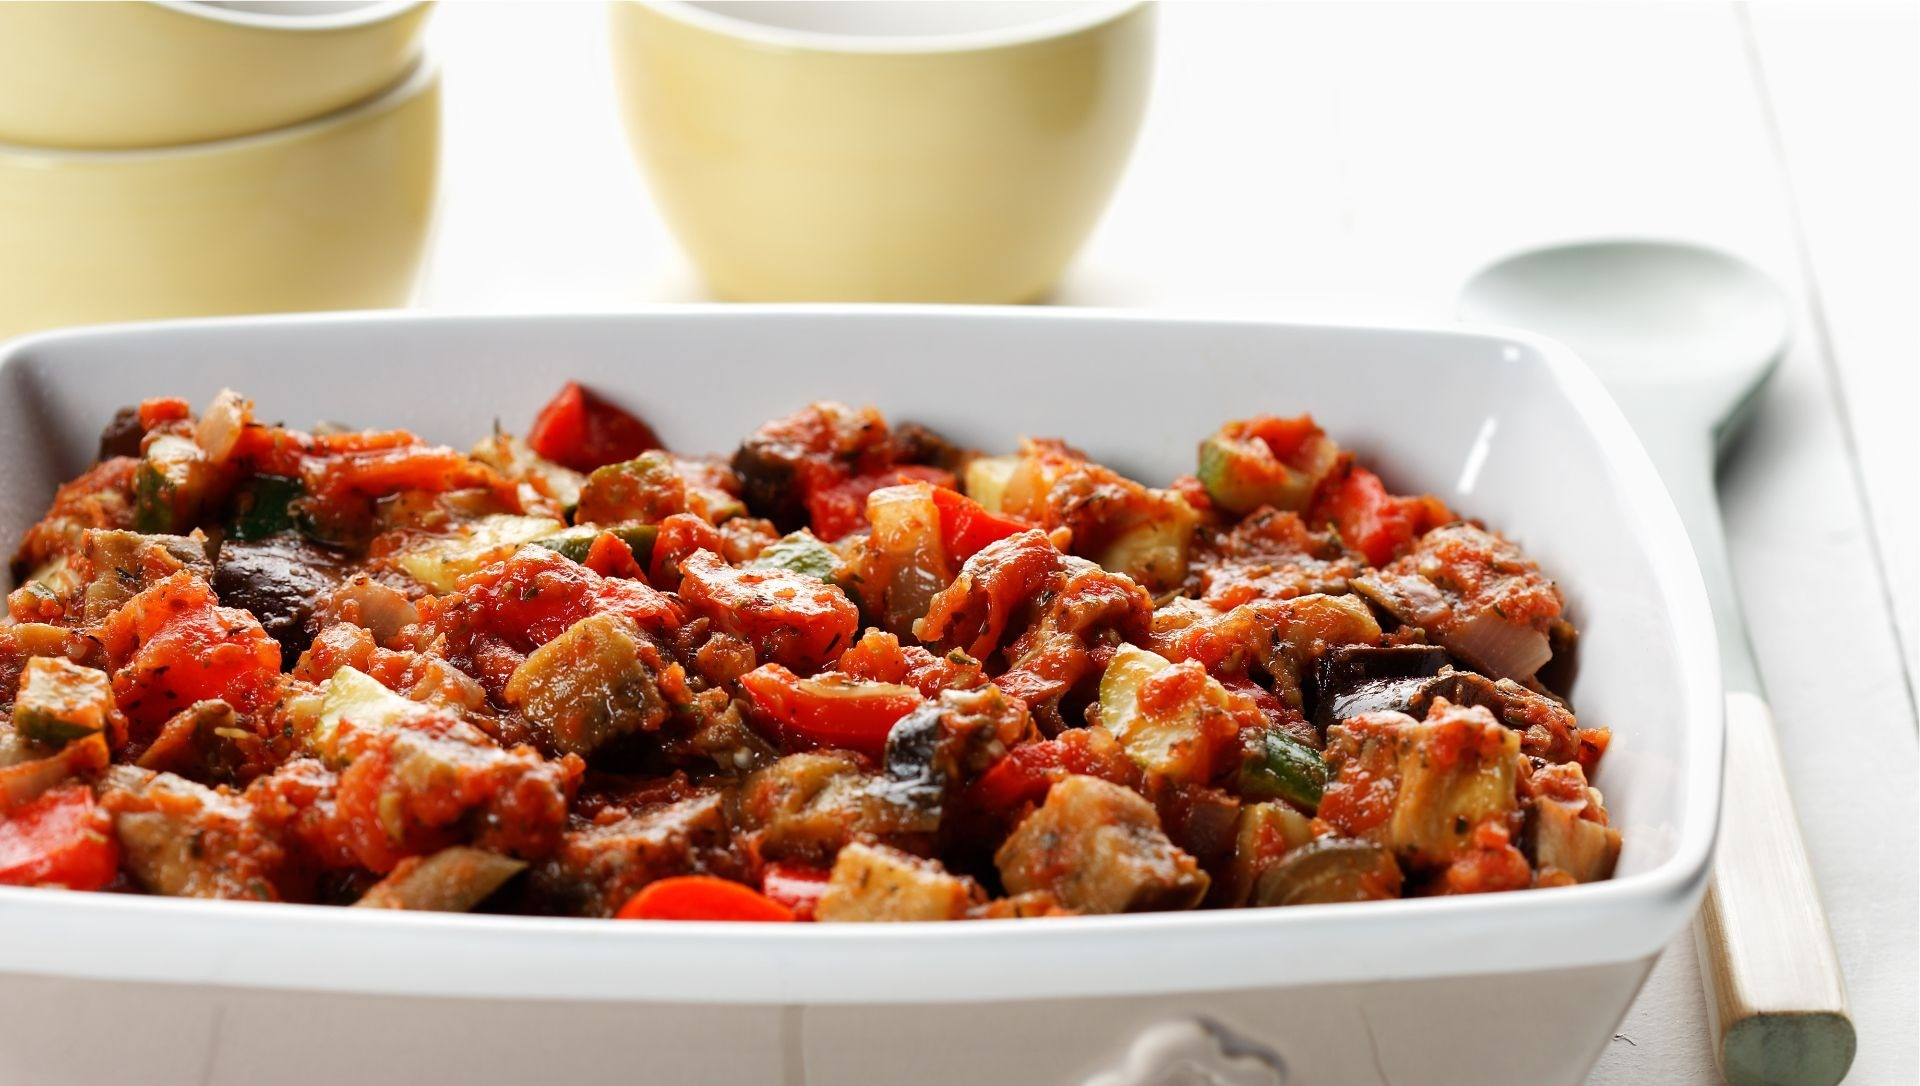 Quick ratatouille in a white baking dish with a serving spoon on the side.